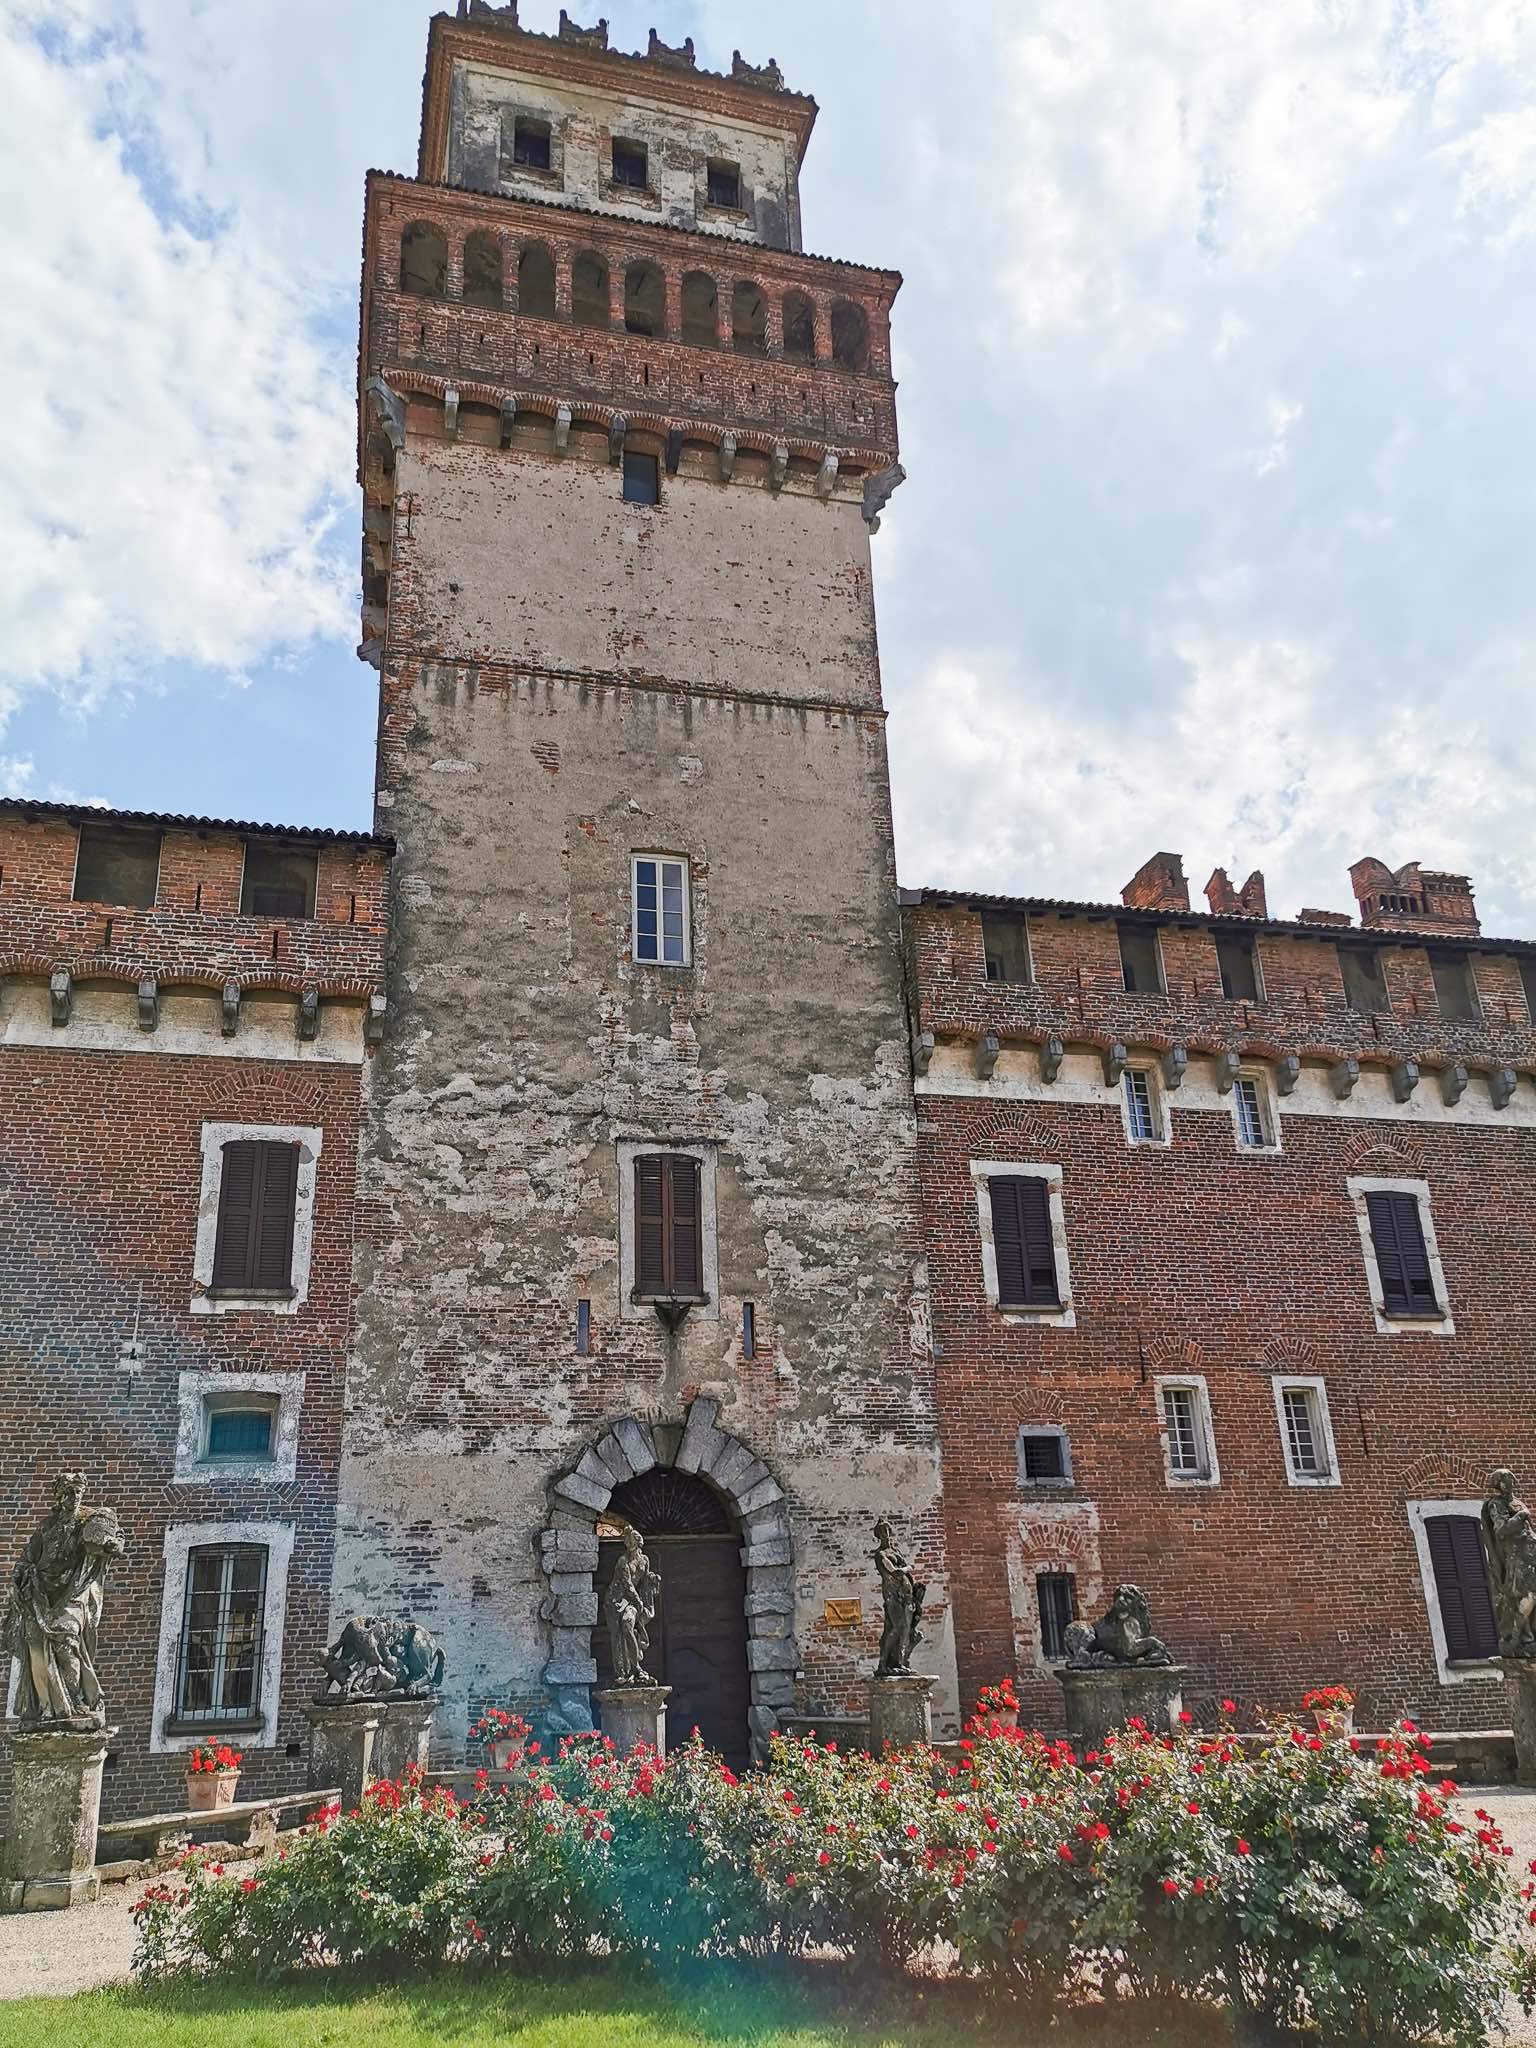 The ancient tower of the Castle of Chignolo Po